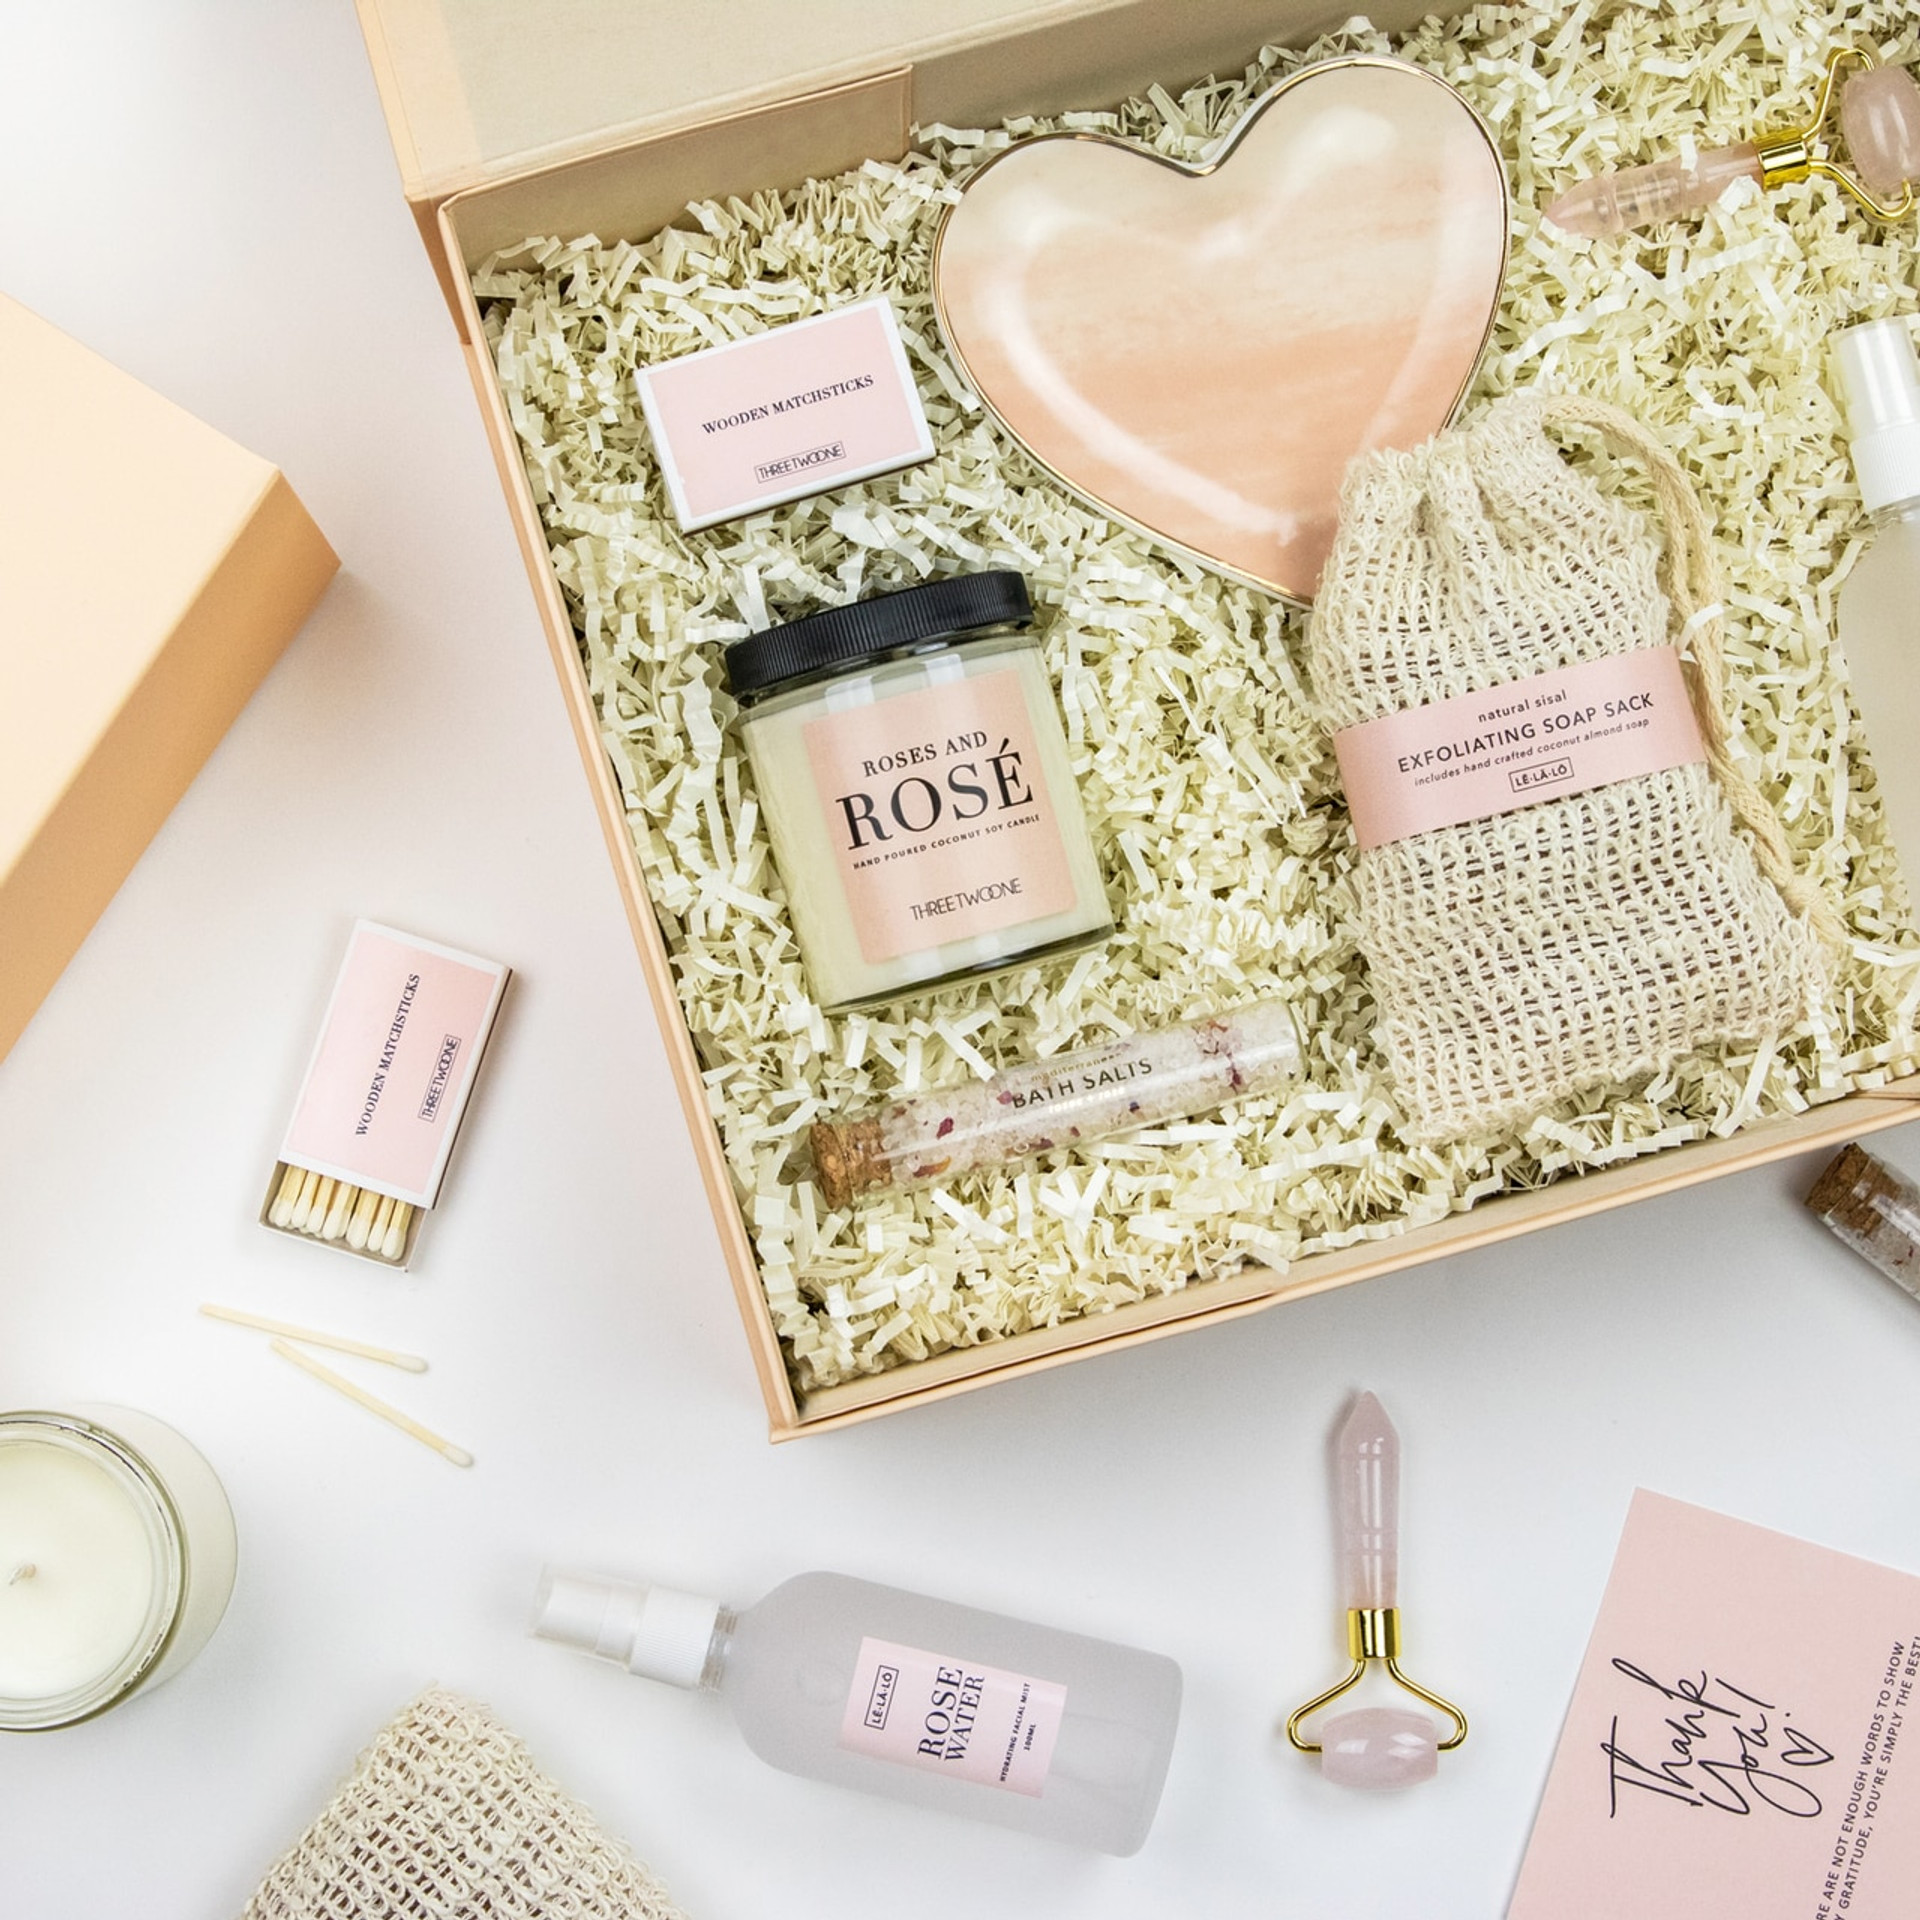 Feel Better Gift Box - Roses and Rosé